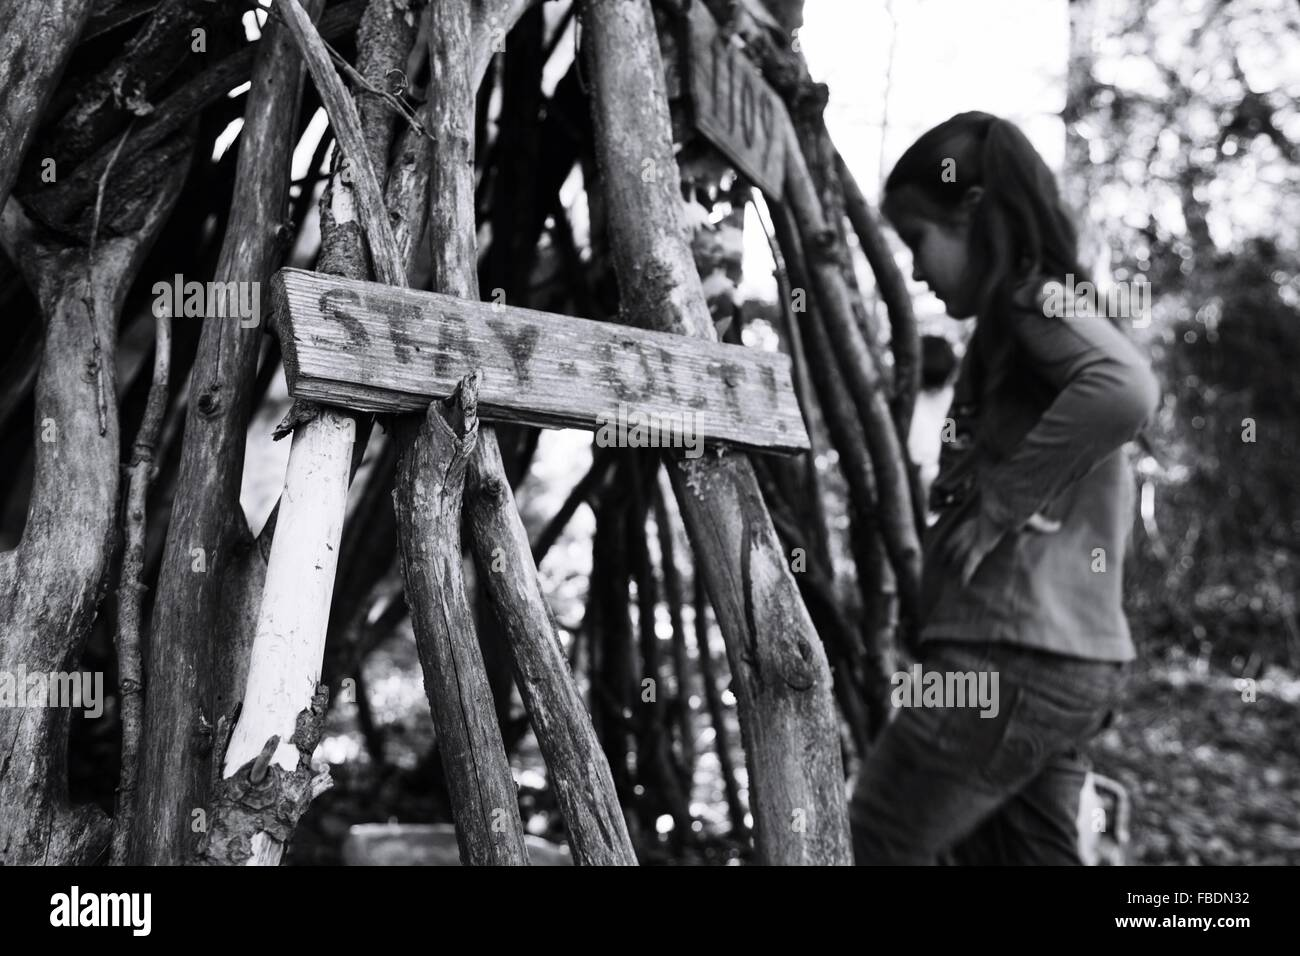 Girl Near Pile Of Wood - Stock Image